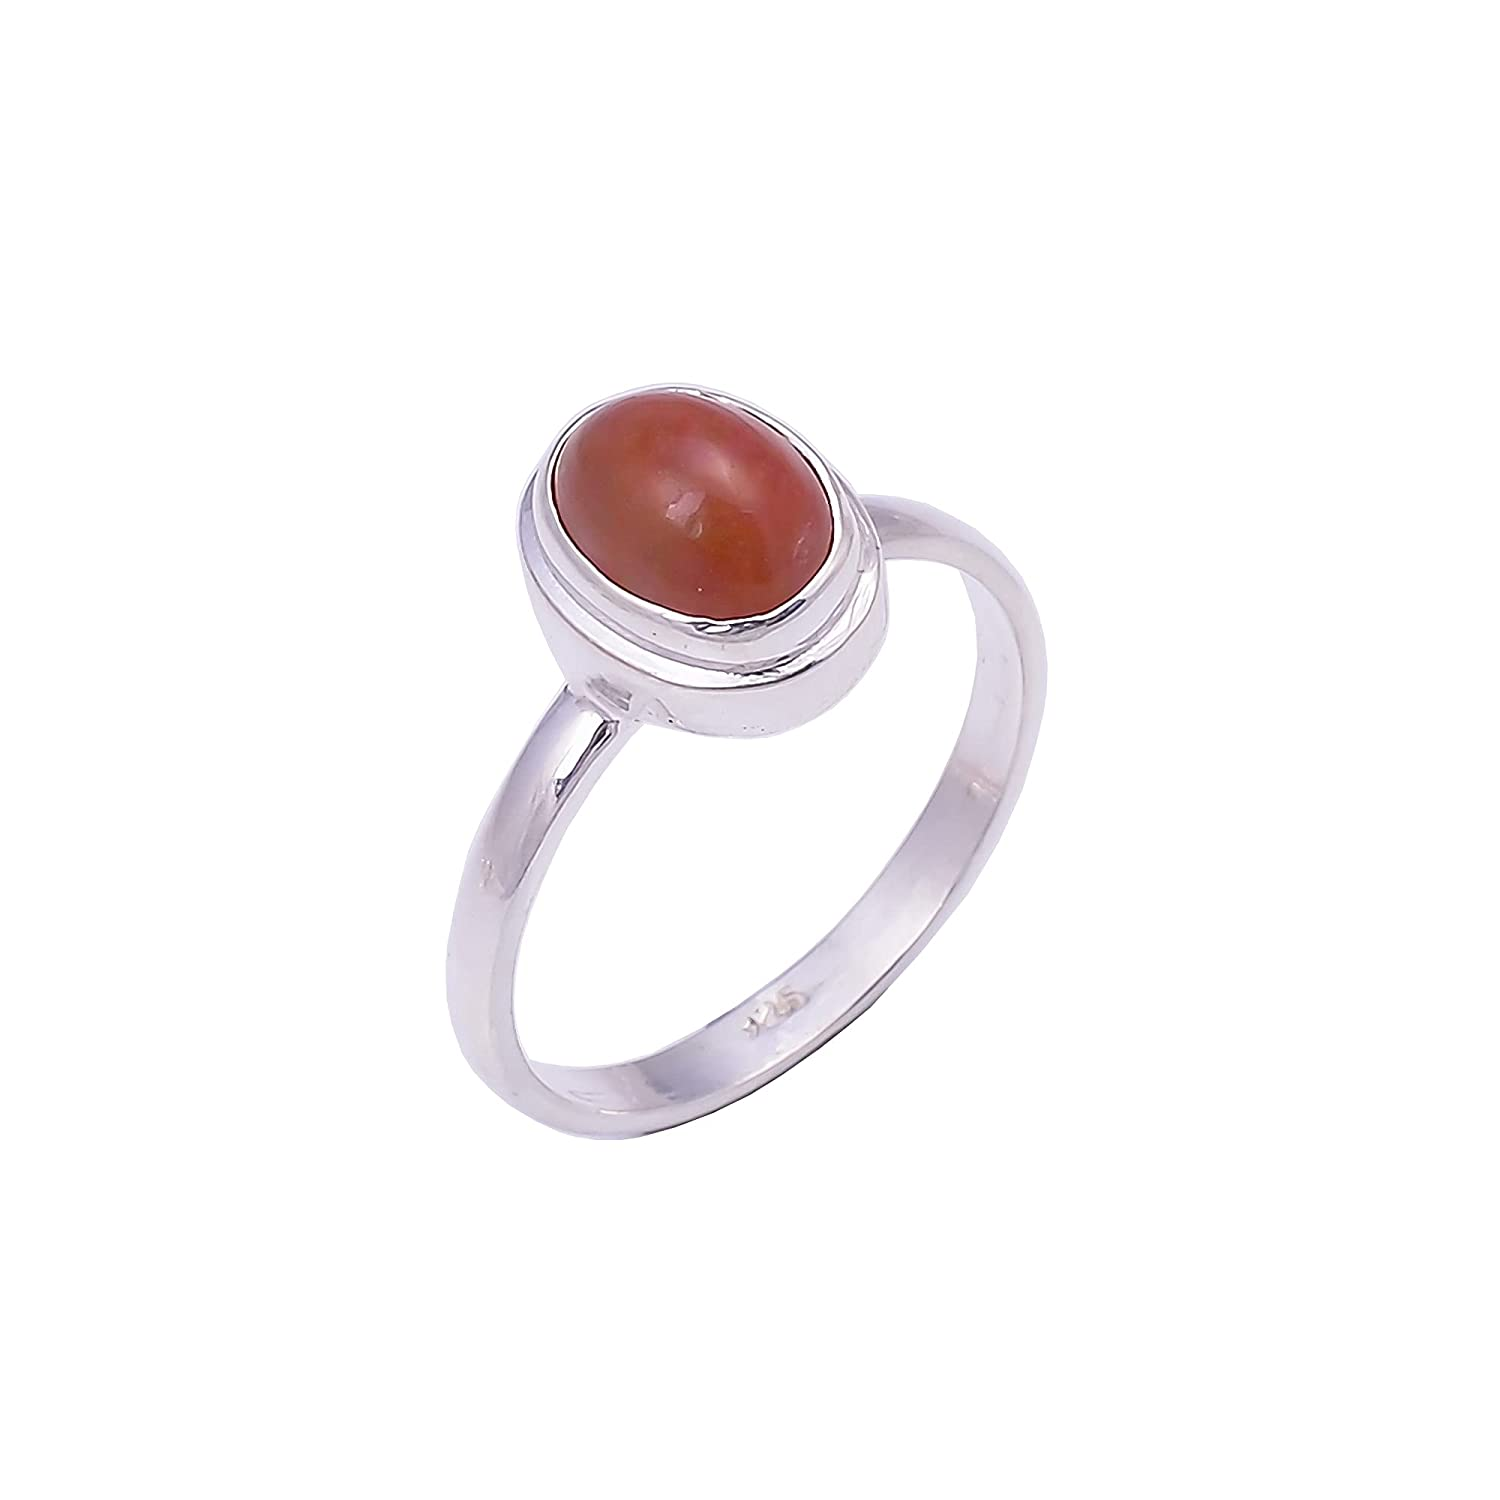 925 Sterling Silver Ring Size US B Indianapolis Mall Opal Ranking TOP13 Gemstone Ethiopian 5.75